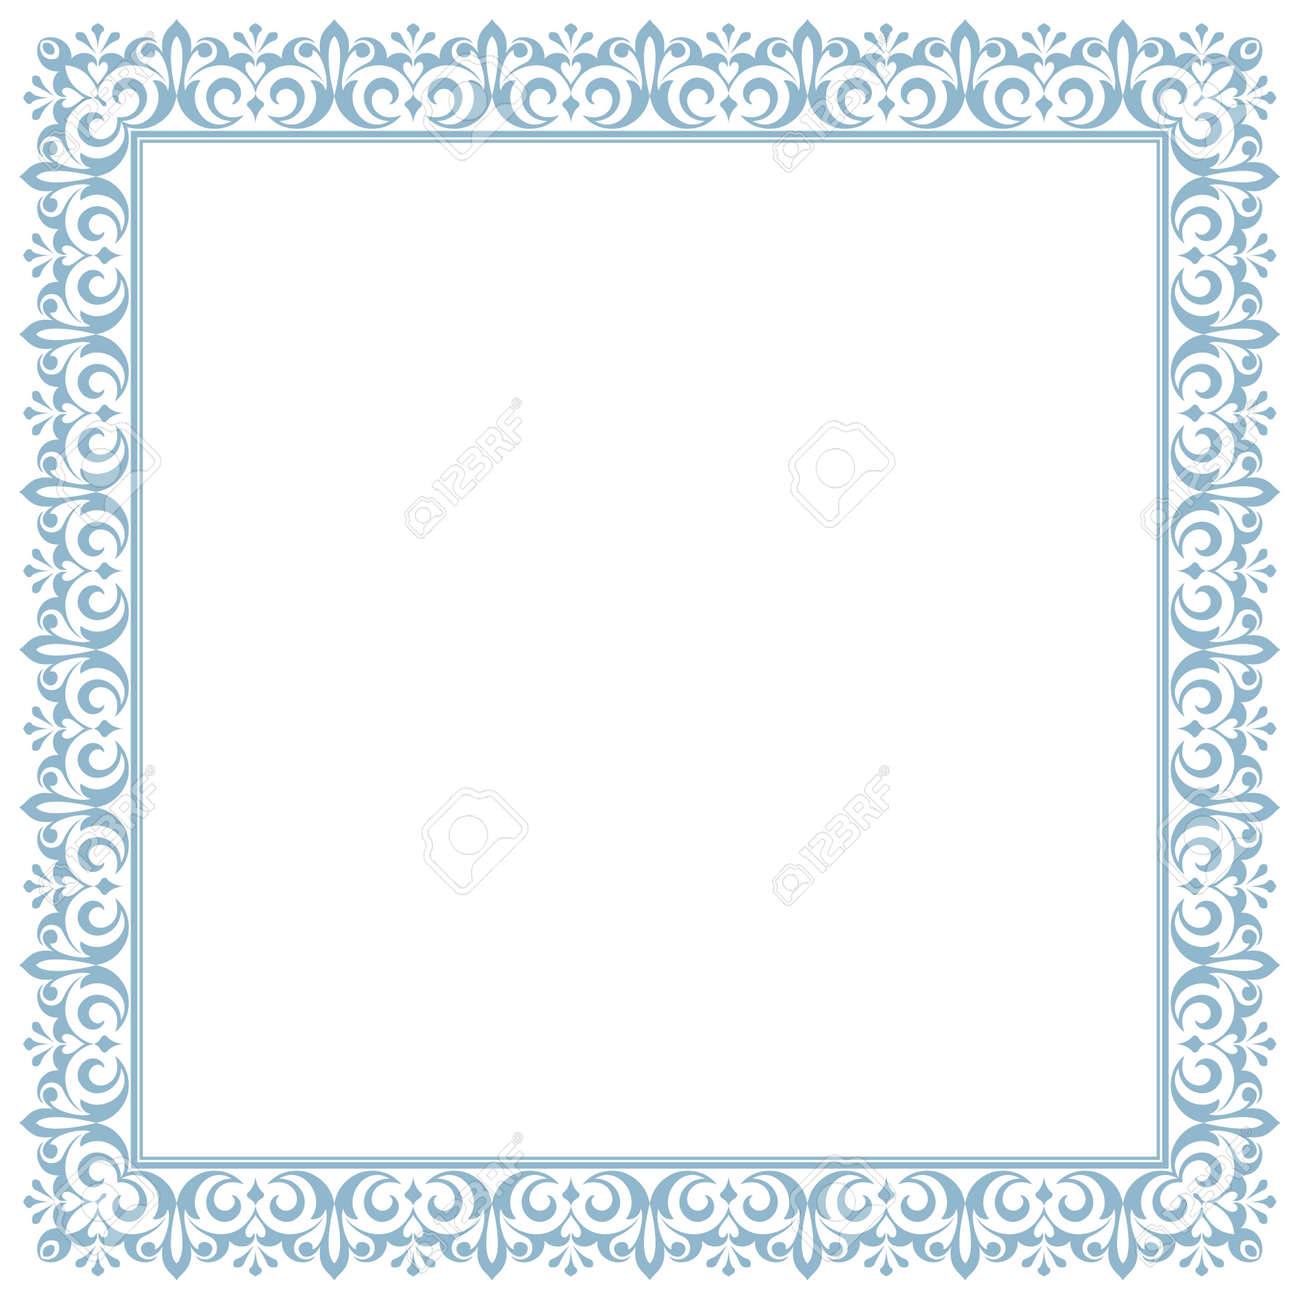 Decorative frame Elegant vector element for design in Eastern style, place for text. Floral golden and black border. Lace illustration for invitations and greeting cards - 169842865